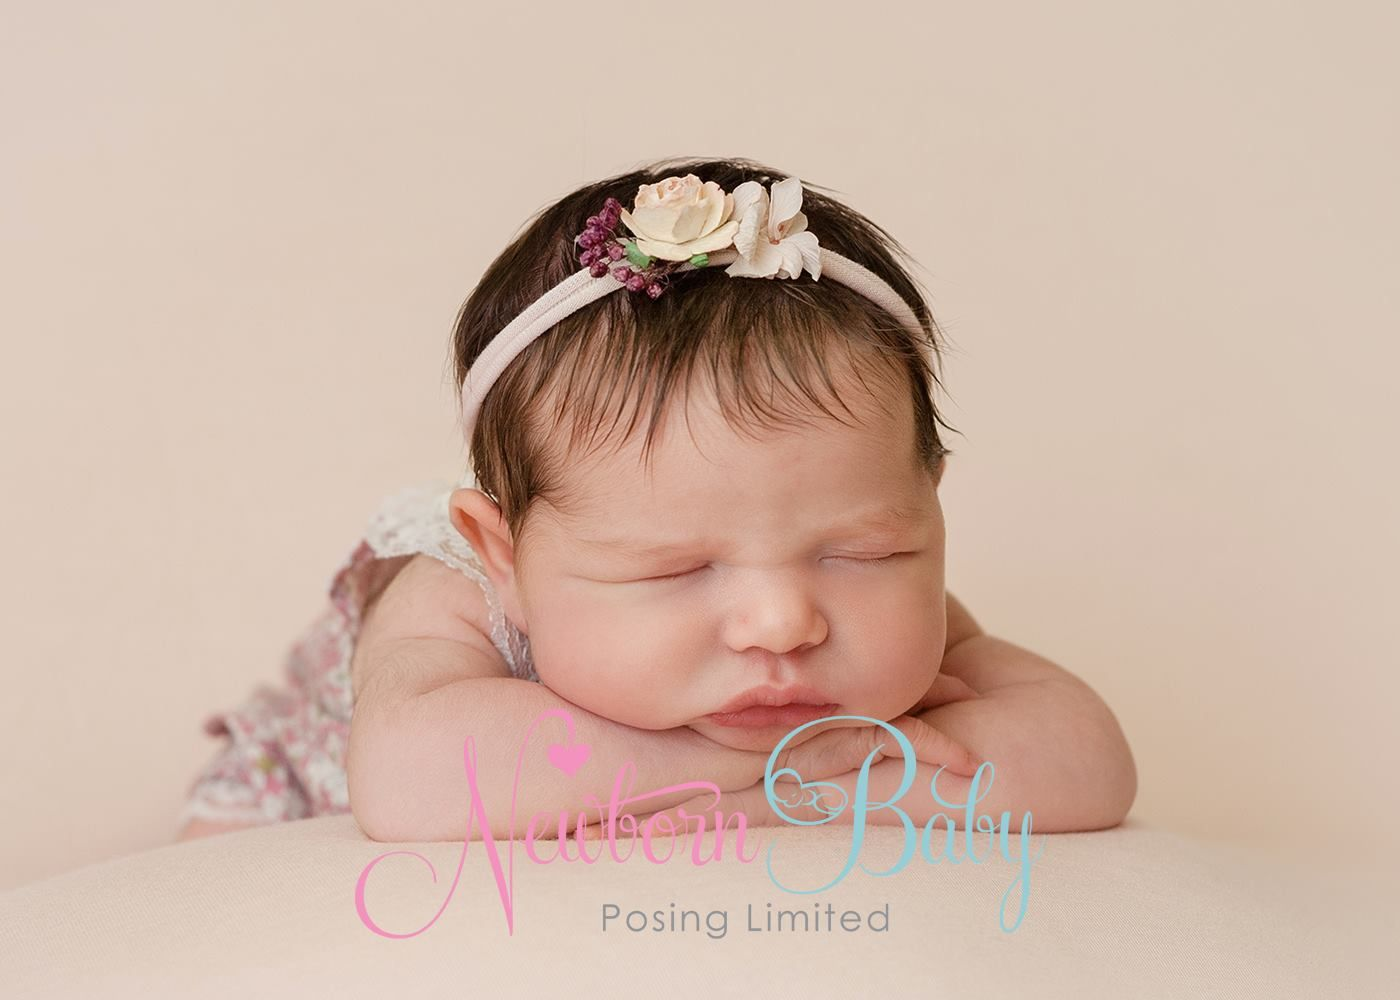 Welcome to newborn baby photography workshops